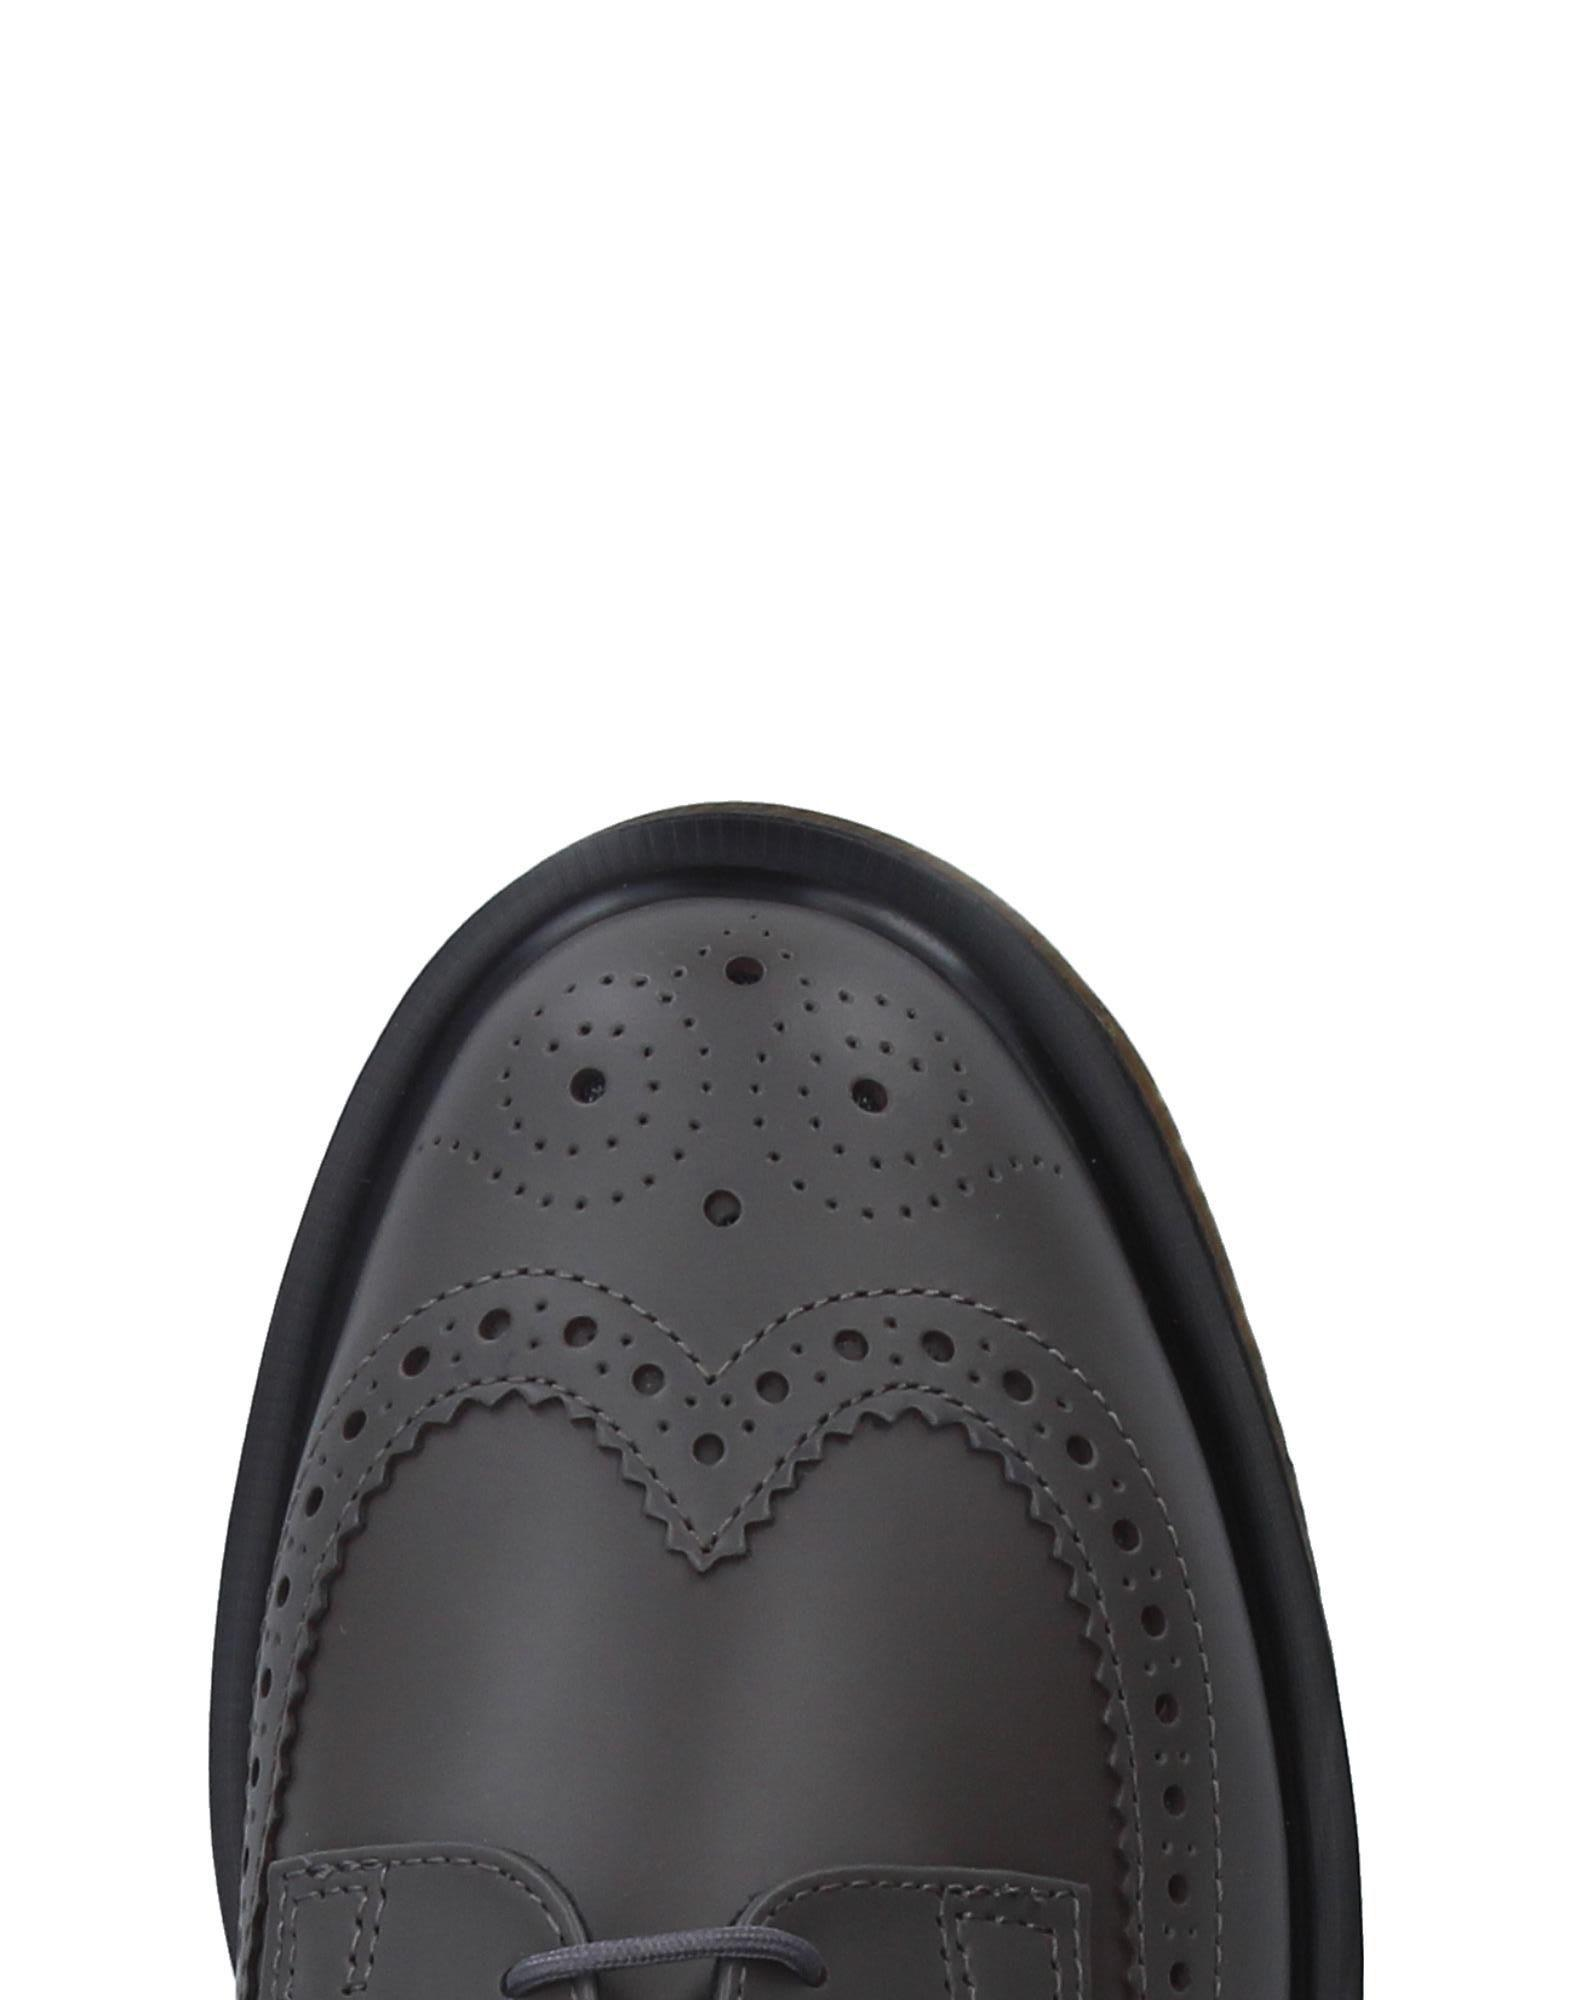 Dr. Martens Leather Lace-up Shoe in Grey (Grey) for Men